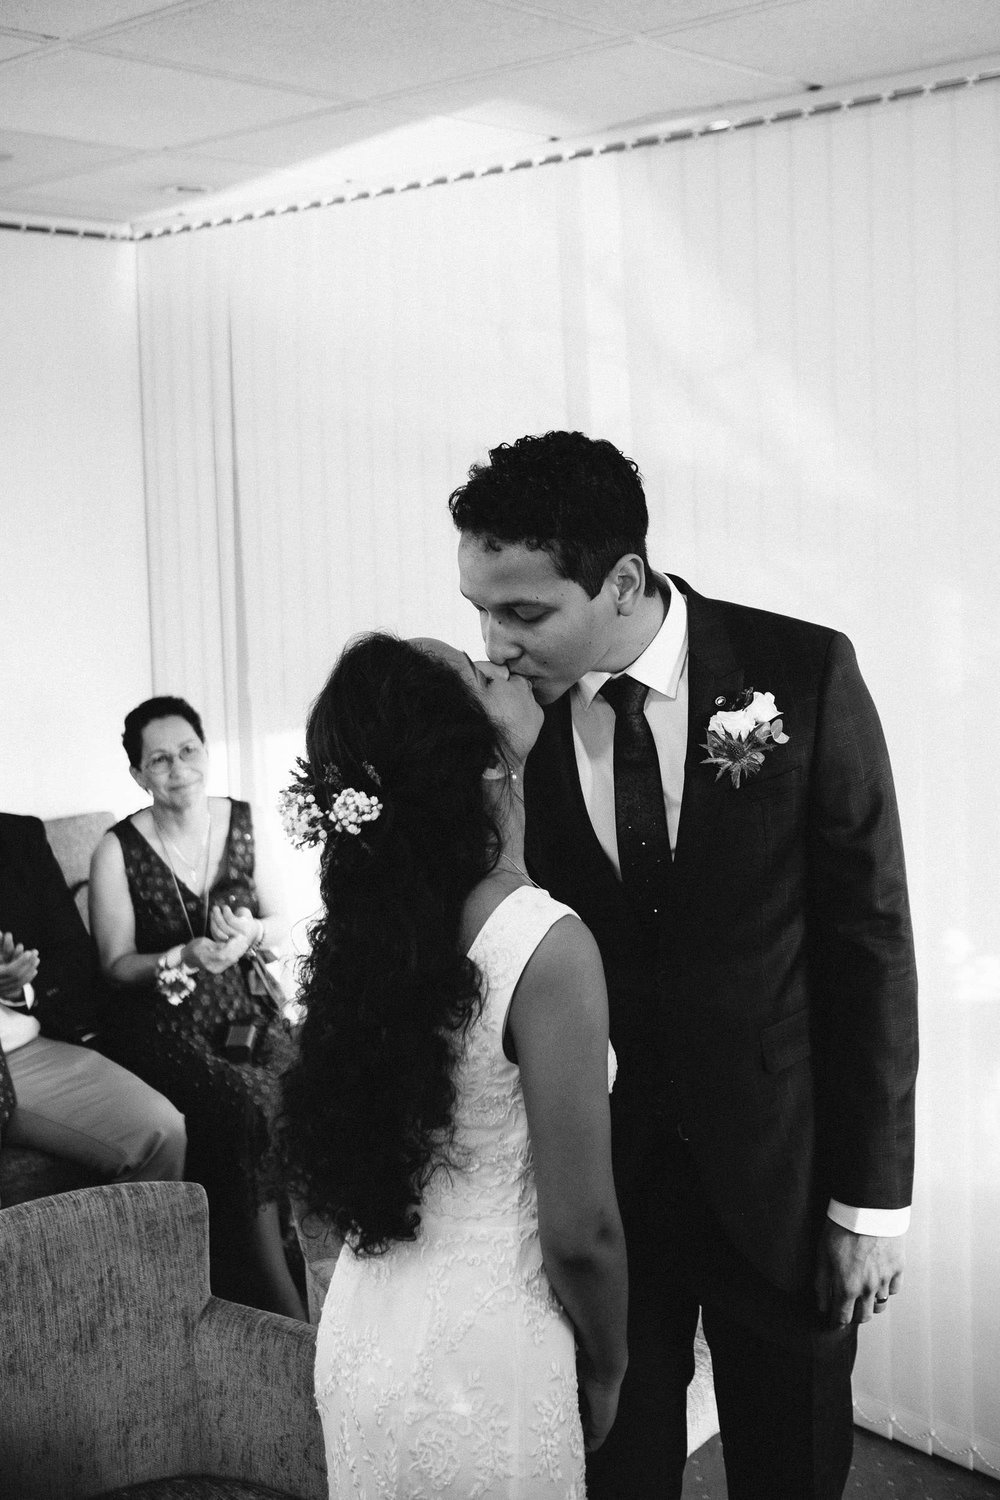 Black and white photo of bride and groom kissing during wedding ceremony